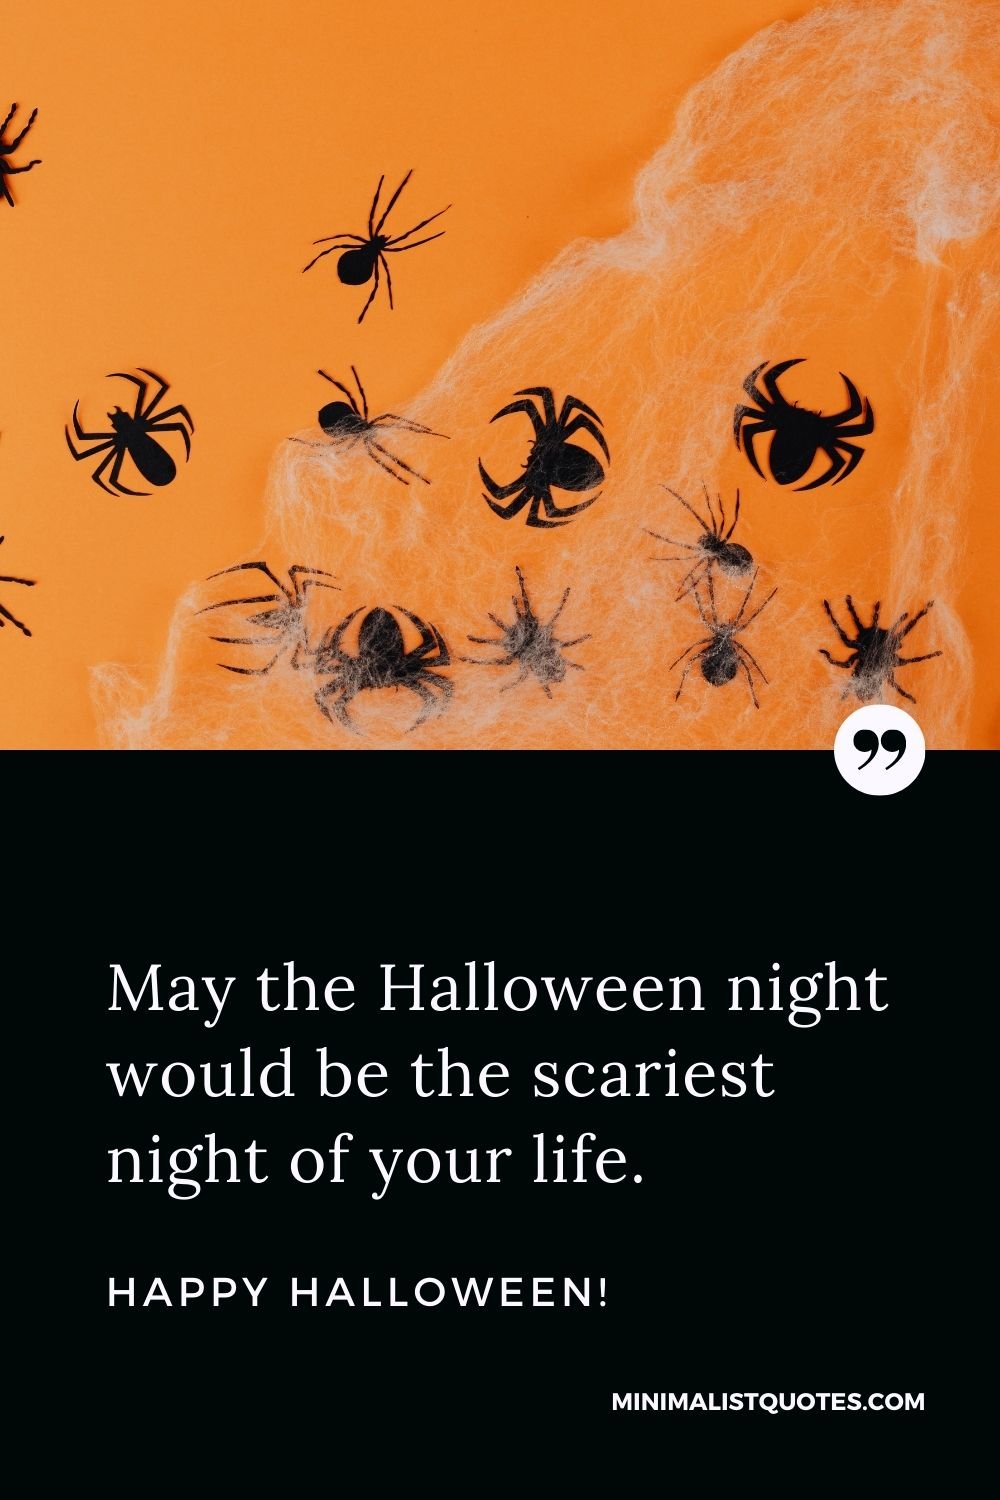 Happy Halloween Wishes - May the Halloween night would be the scariest night of your life.